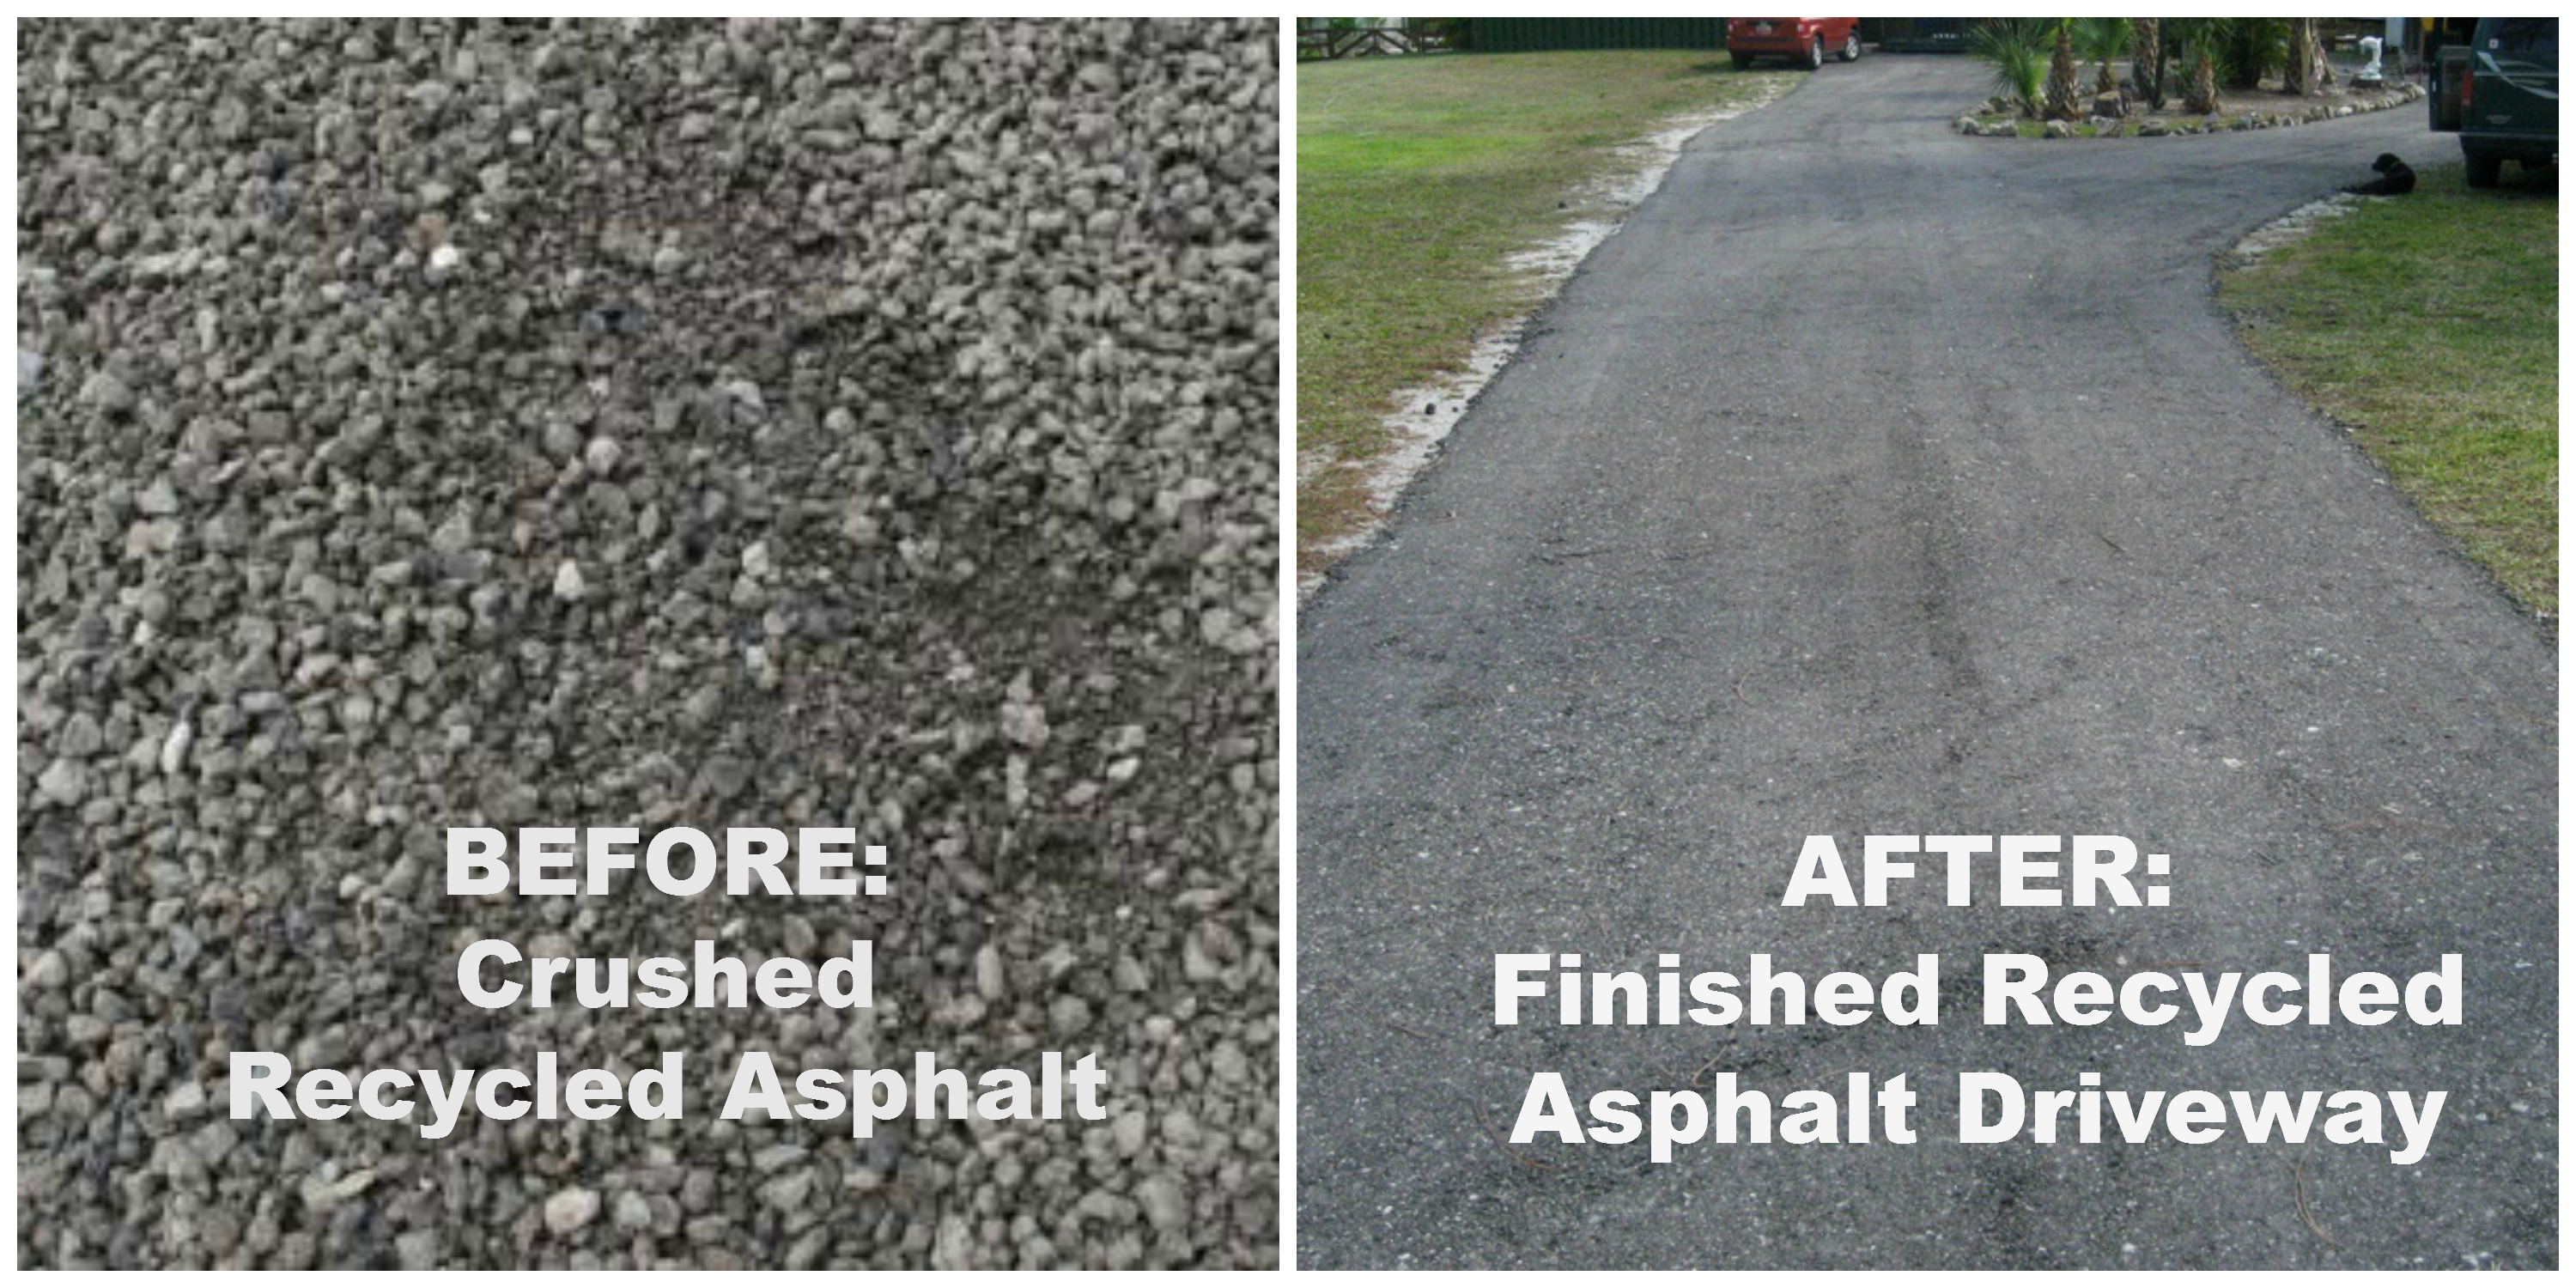 Recycled asphalt benefits the earth and your wallet outdoor no mud to track into your barn or truck with this affordable crushed recycled asphalt driveway solutioingenieria Images